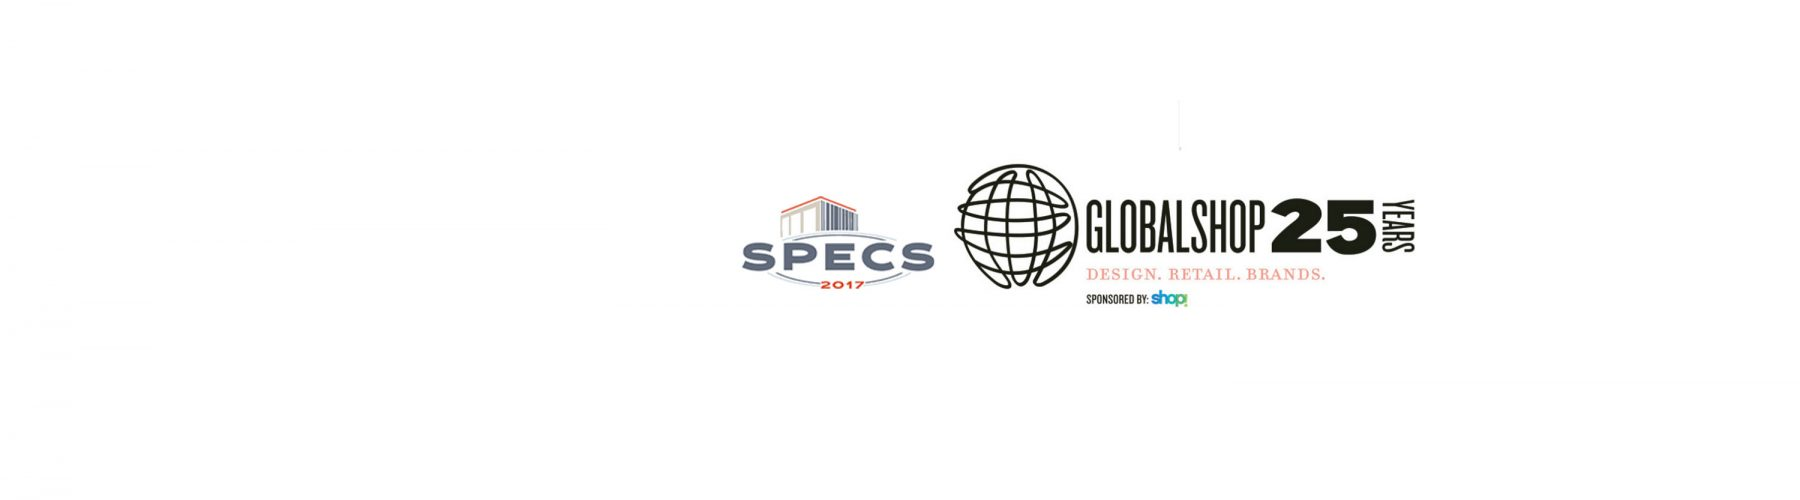 2017 SPECS and Globalshop Tradeshows